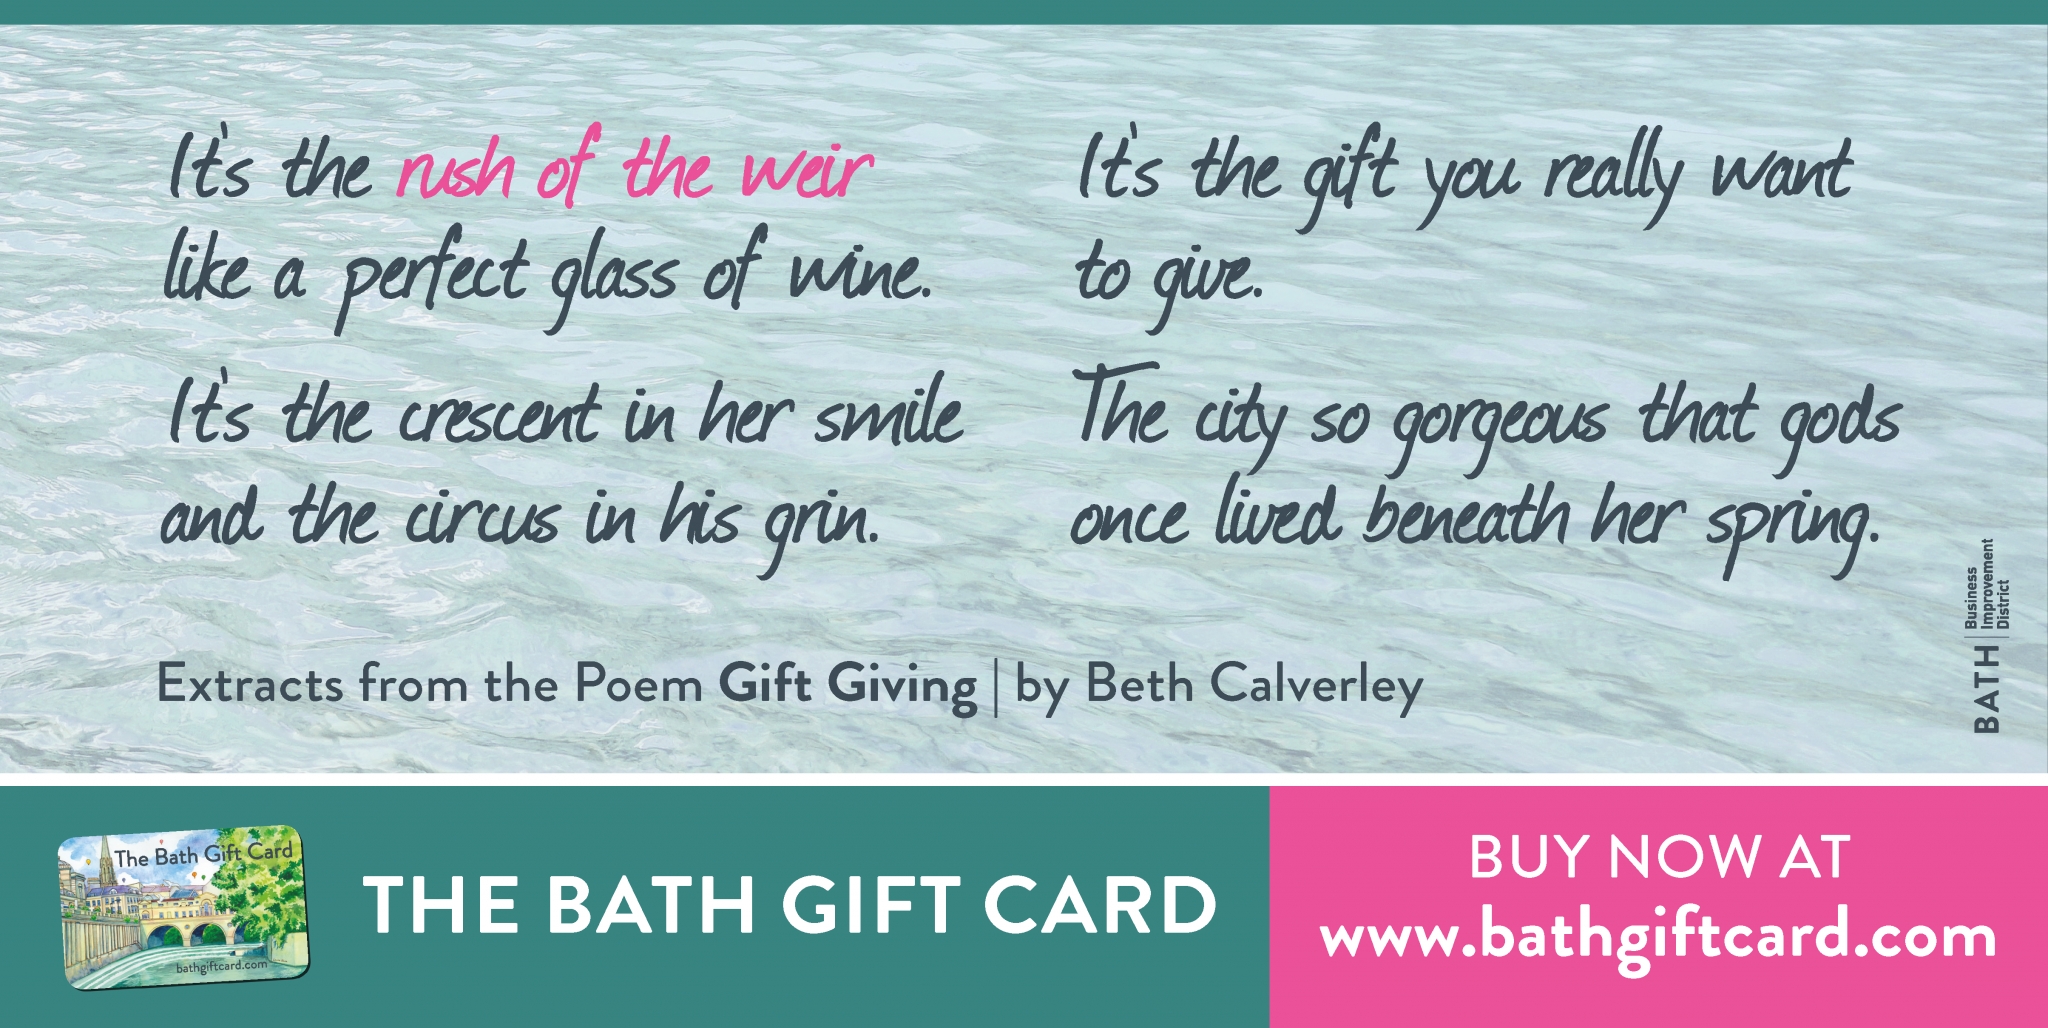 Gift-giving - Beth Calverley